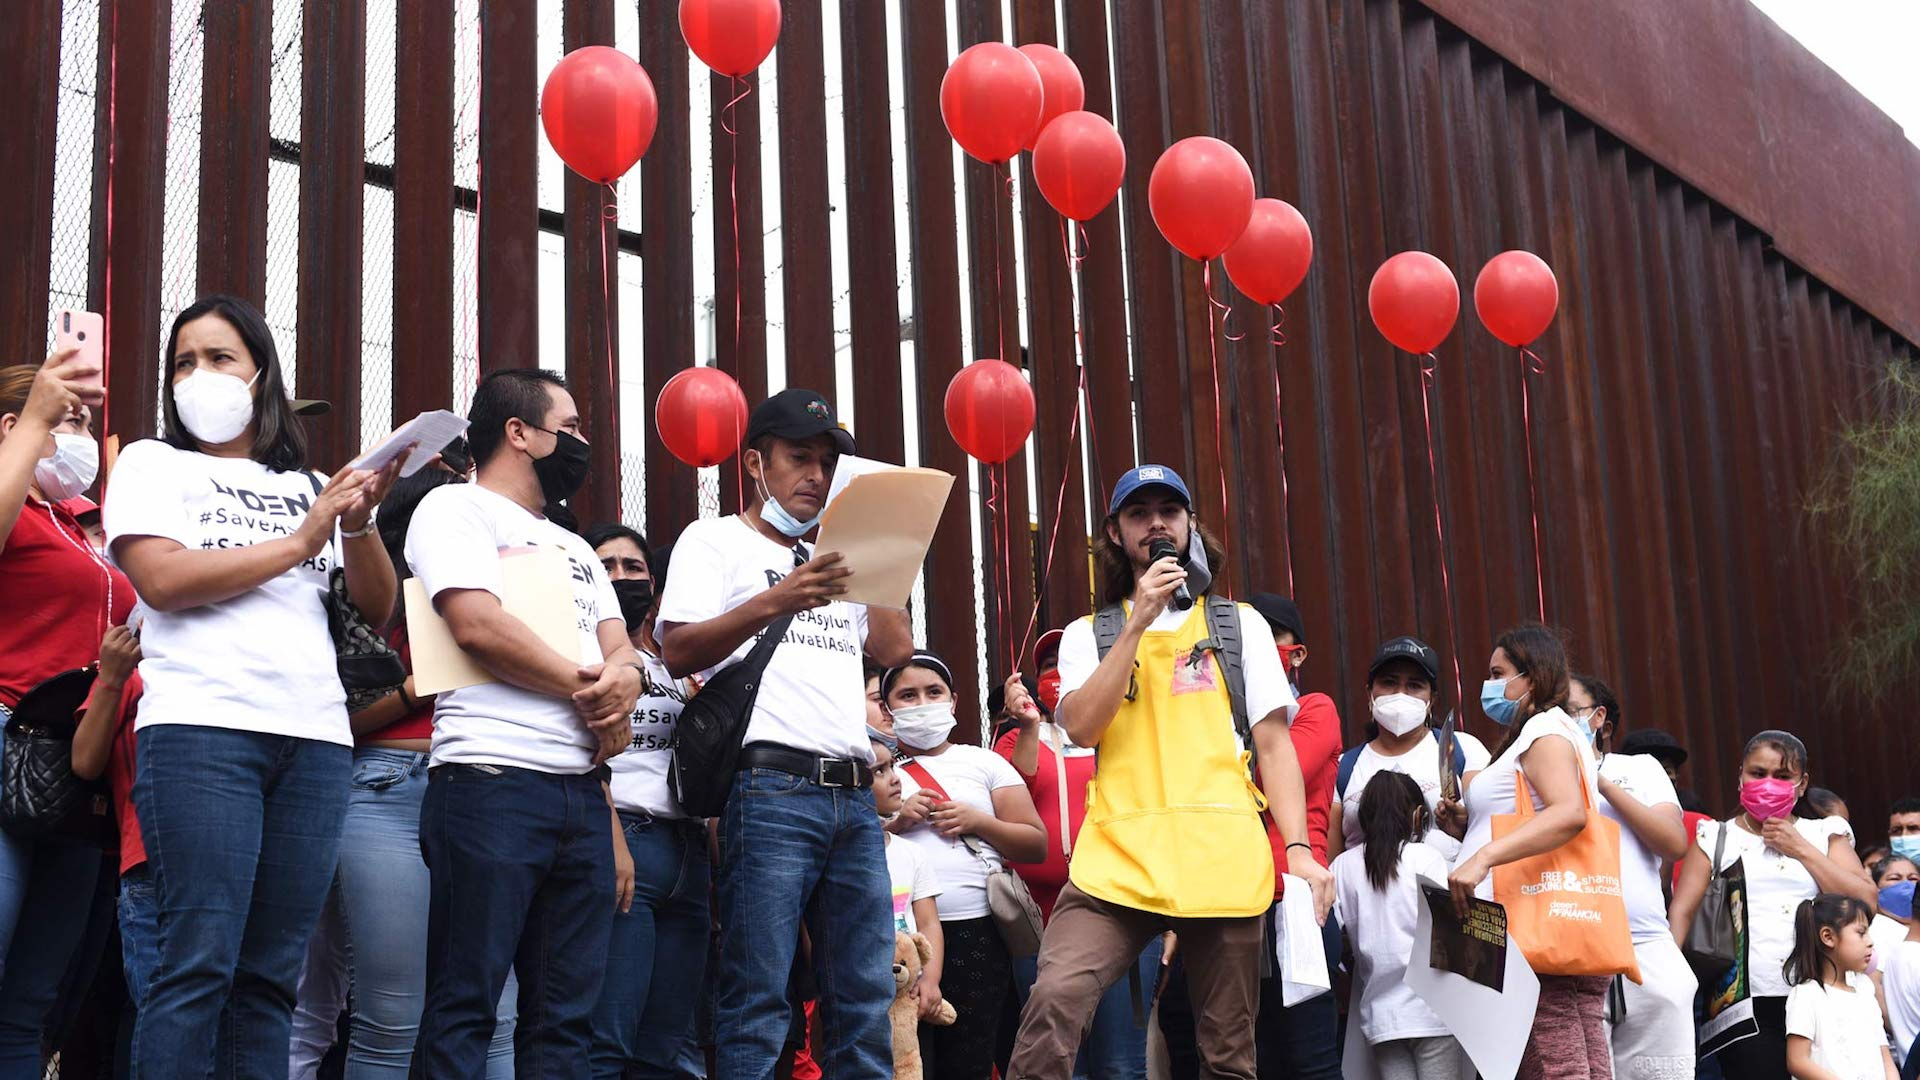 Migrants, advocates and faith leaders gather on both sides of the border wall in Nogales to read out the names of families seeking asylum and give testimonies.